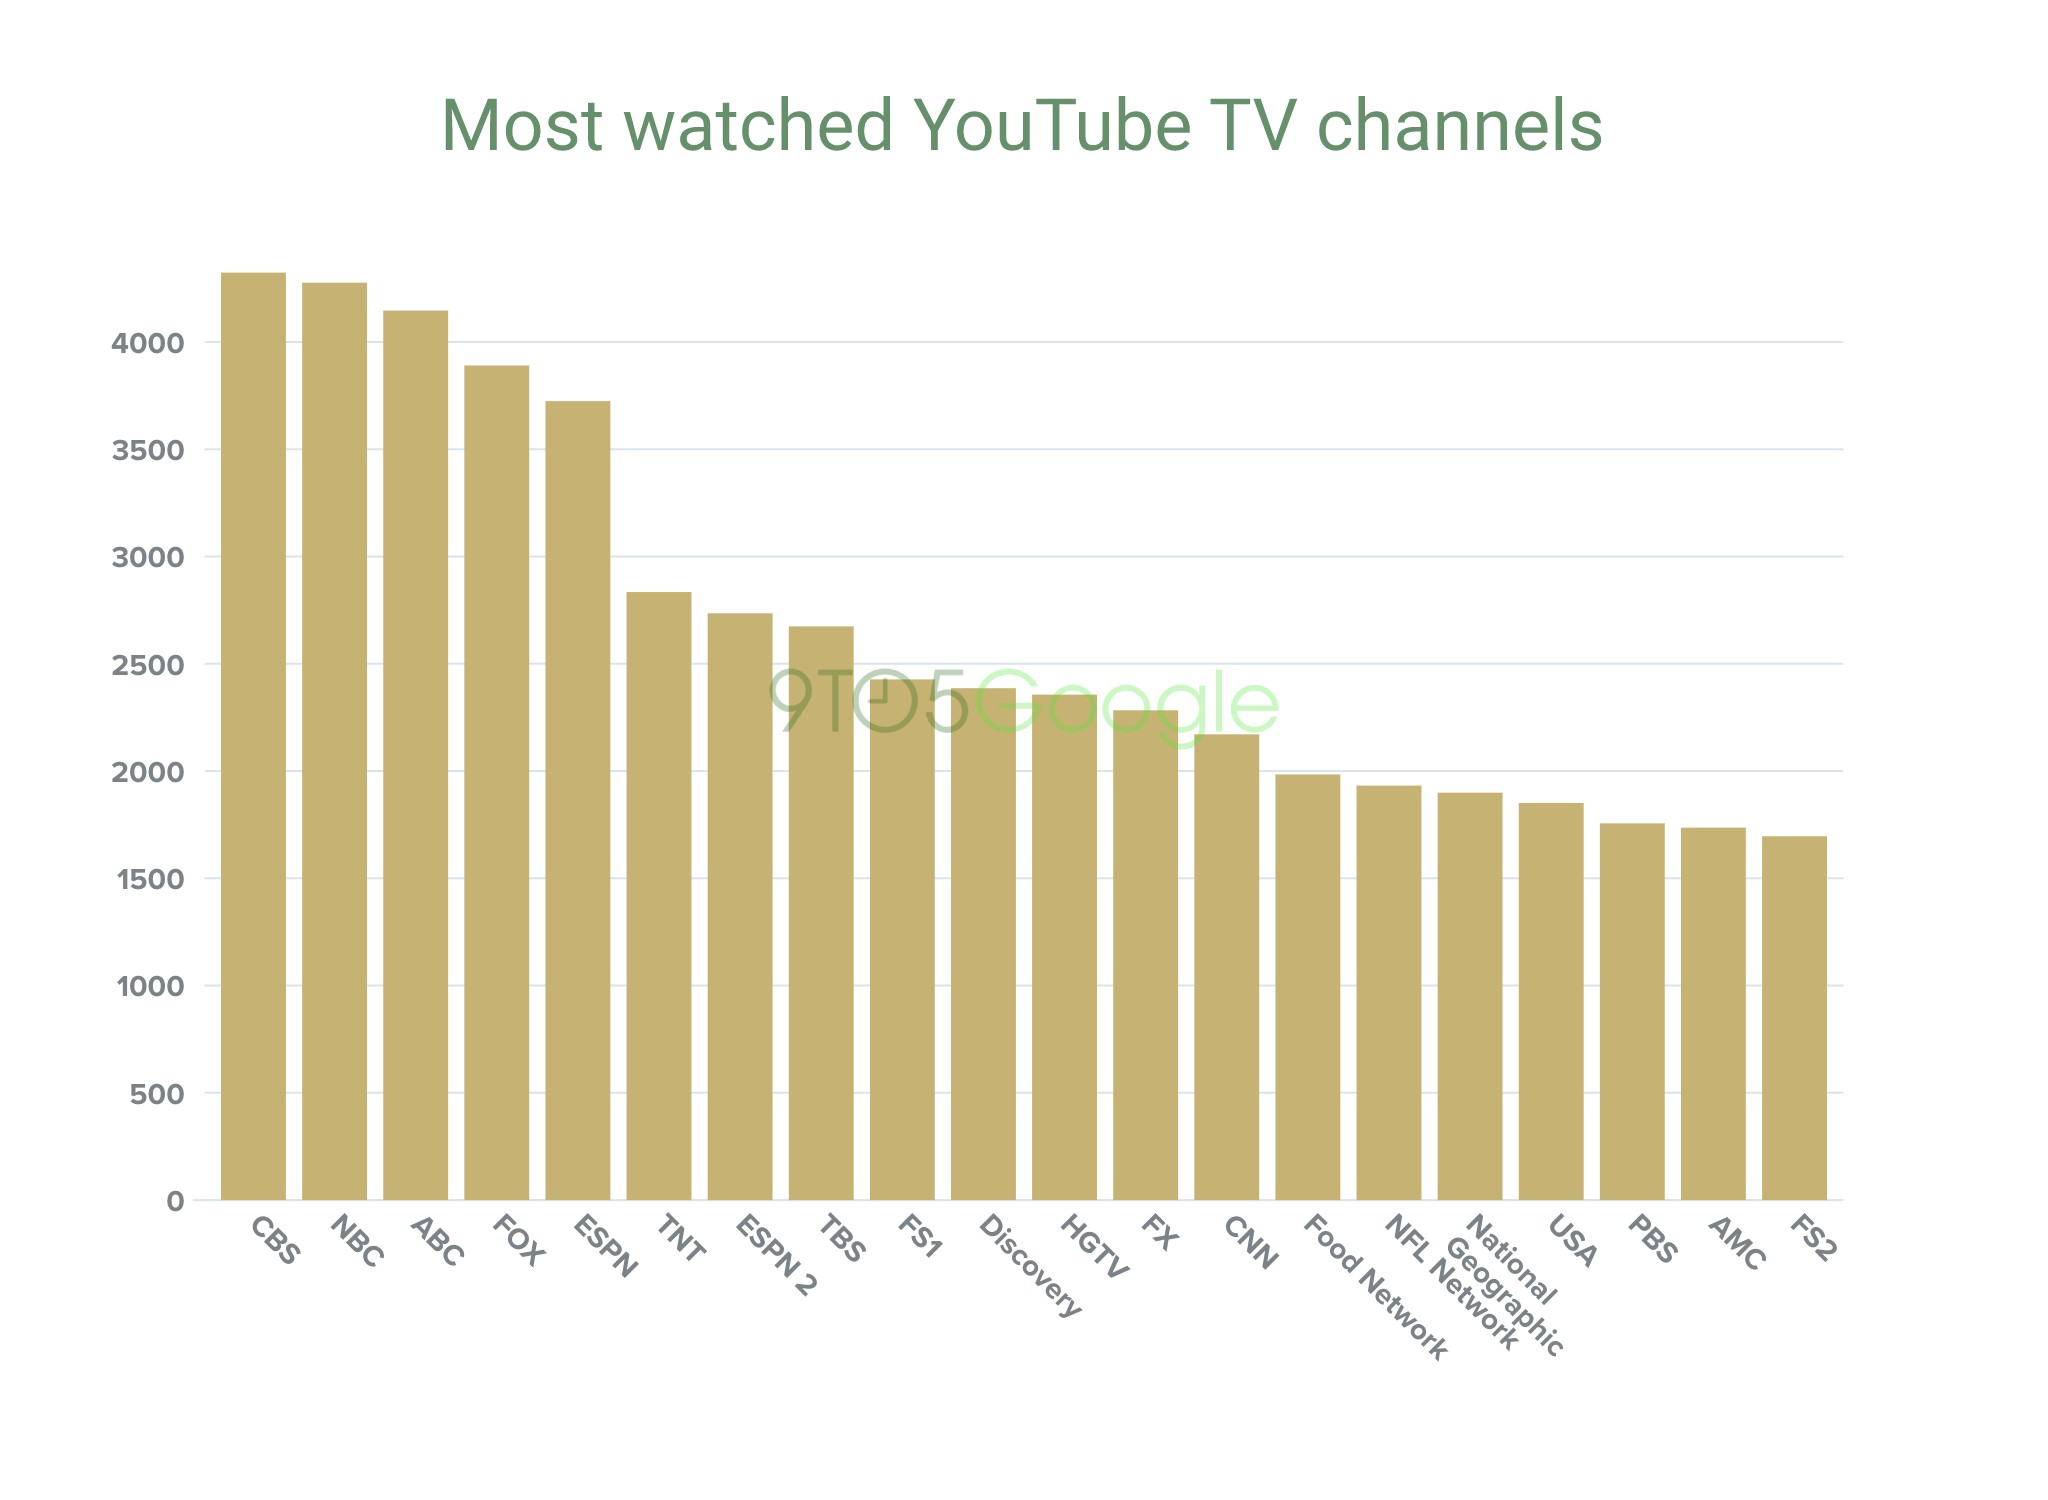 Bar chart of most watched YouTube TV channels: 1. CBS 2. NBC 3. ABC 4. FOX 5. ESPN 6. TNT 7. ESPN 2 8. TBS 9. FS1 10. Discovery 11. HGTV 12. FX 13. CNN 14. Food Network 15. NFL Network 16. National Geographic 17. USA 18. PBS 19. AMC 20. FS2